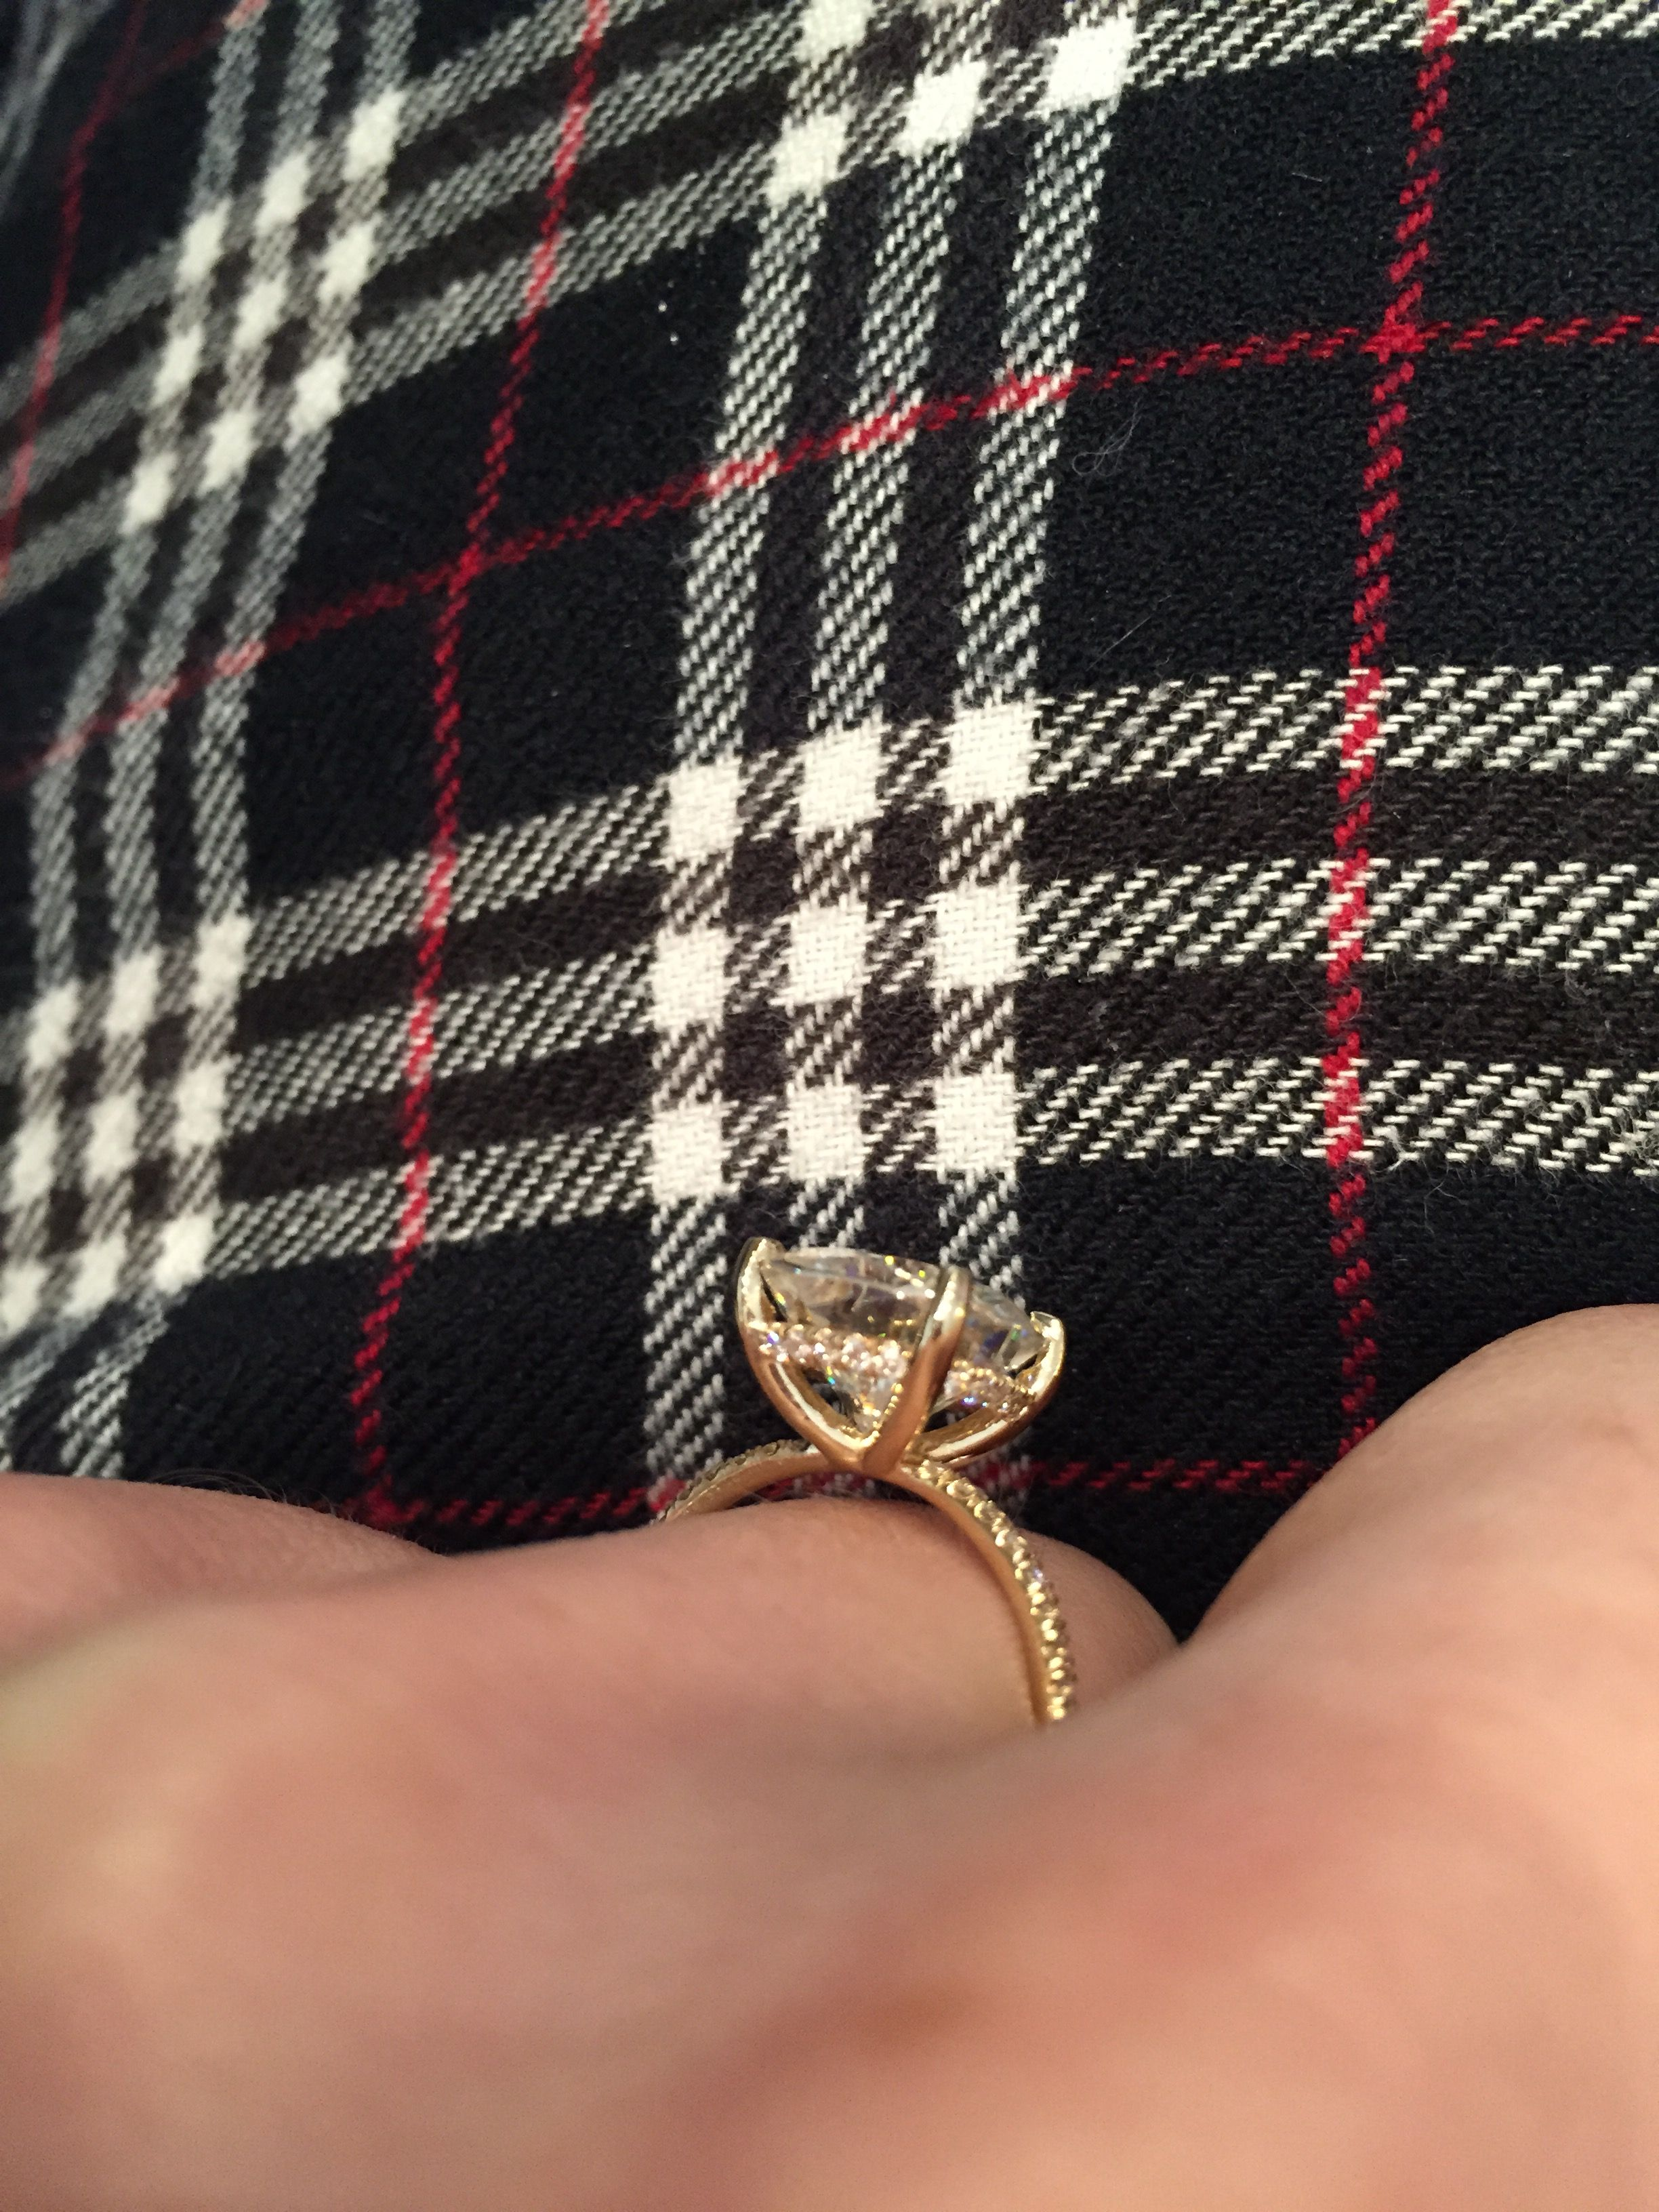 Moissanite Weddingbee …